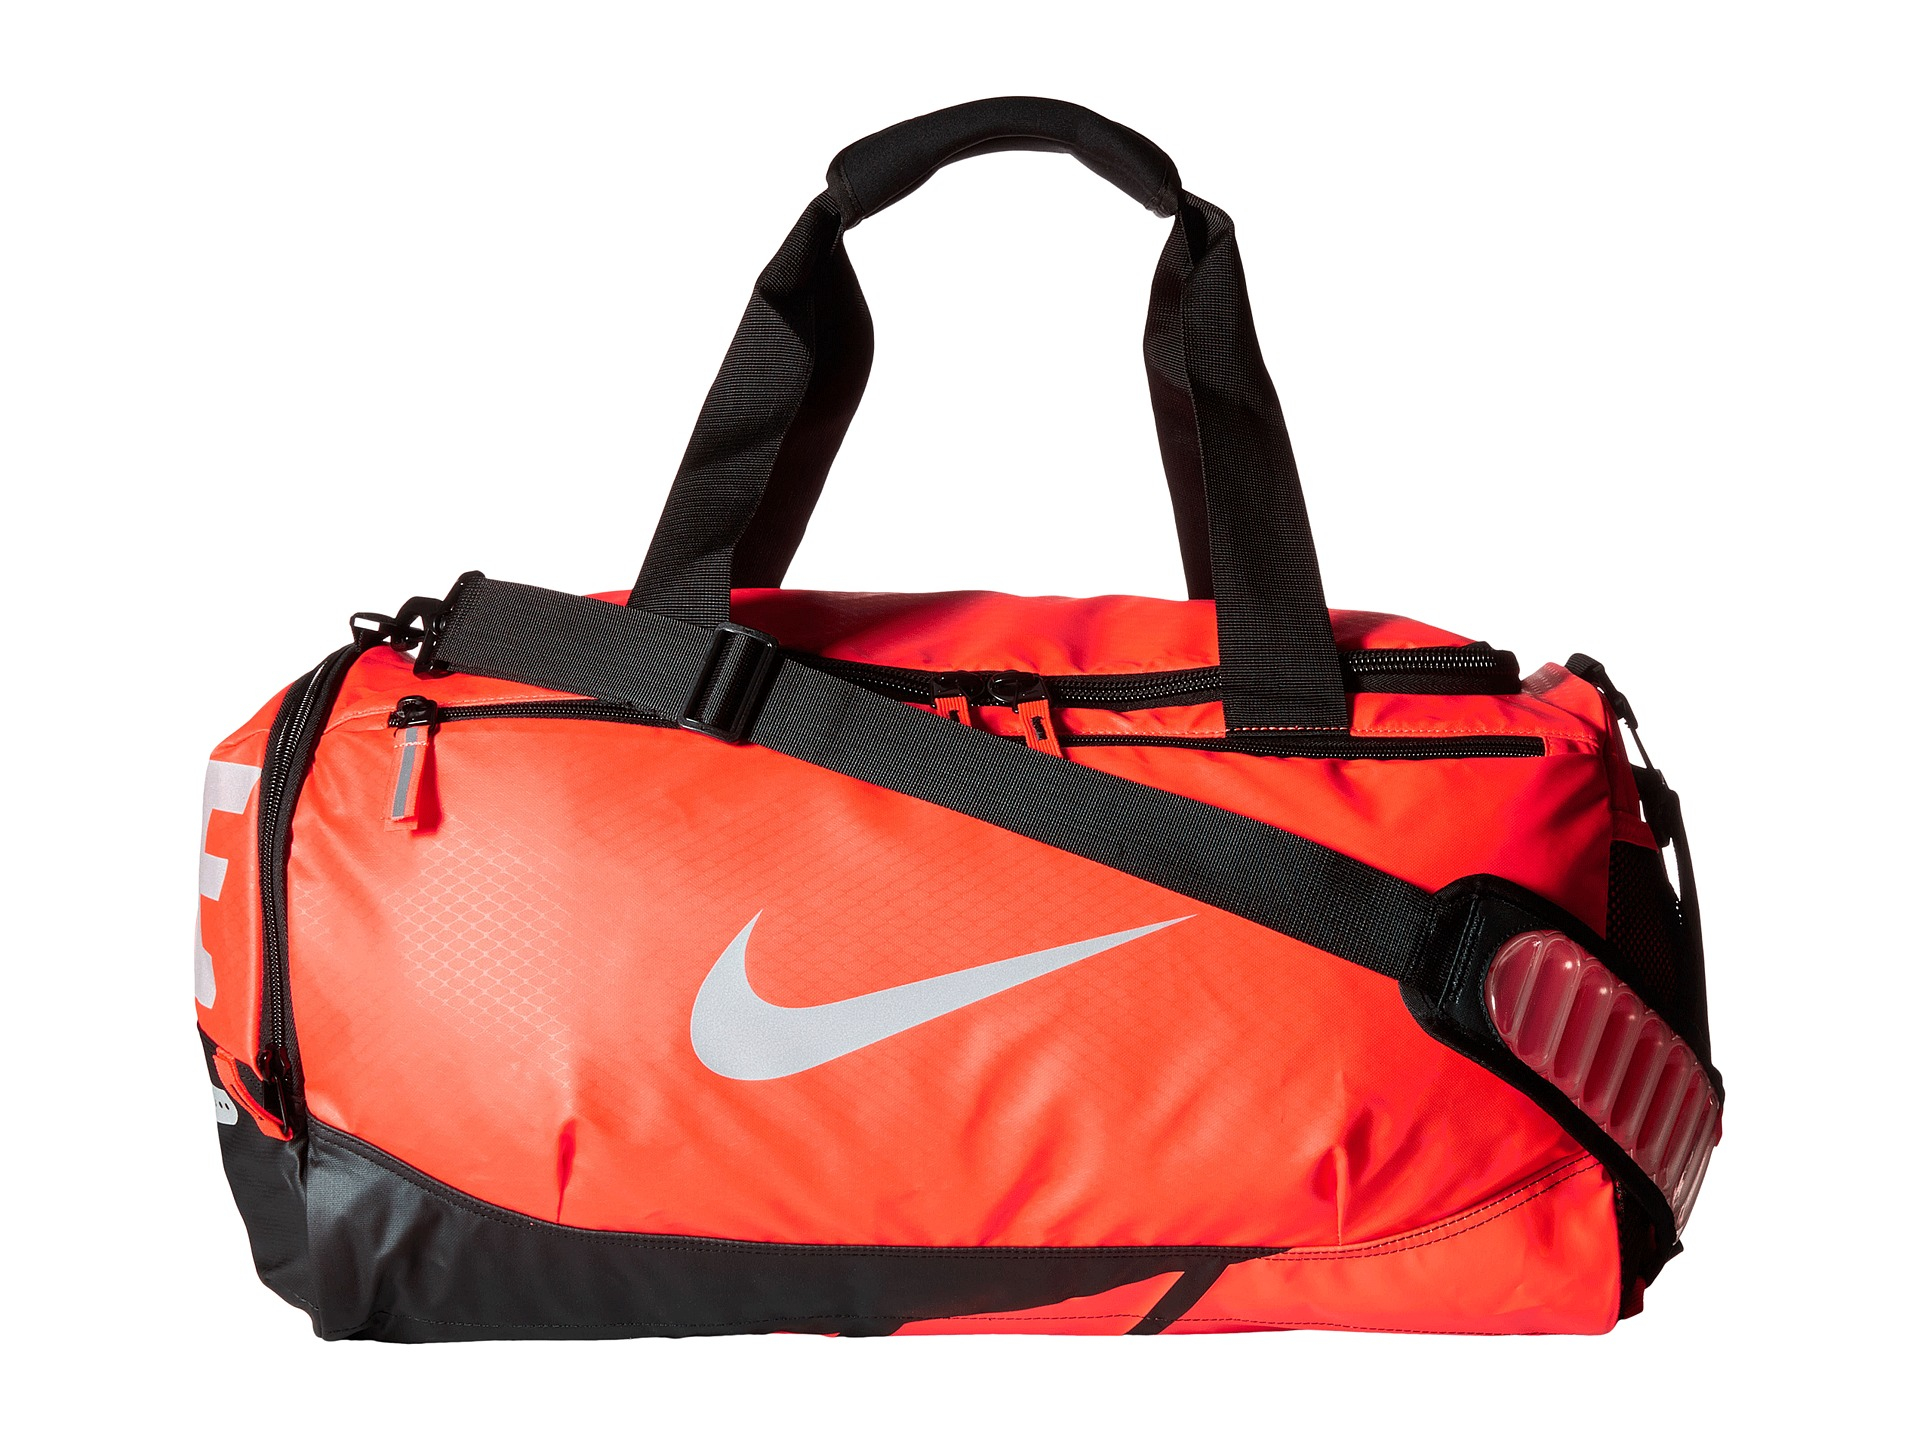 ... Bag  Lyst - Nike Vapor Max Air Small Duffel in Orange ... 3ce423695dc9d